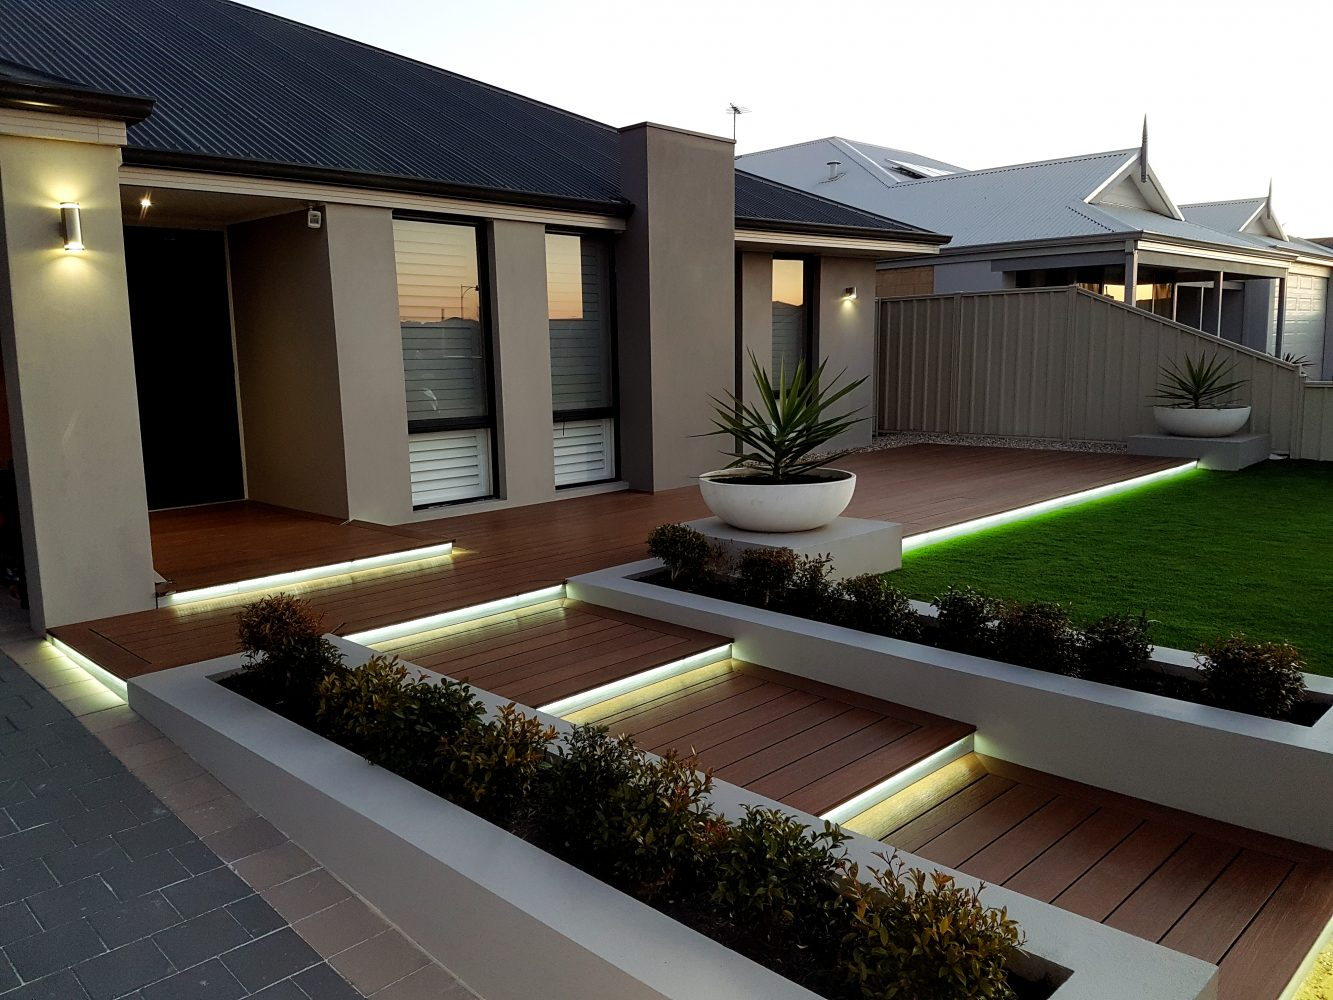 Composite decking with steps